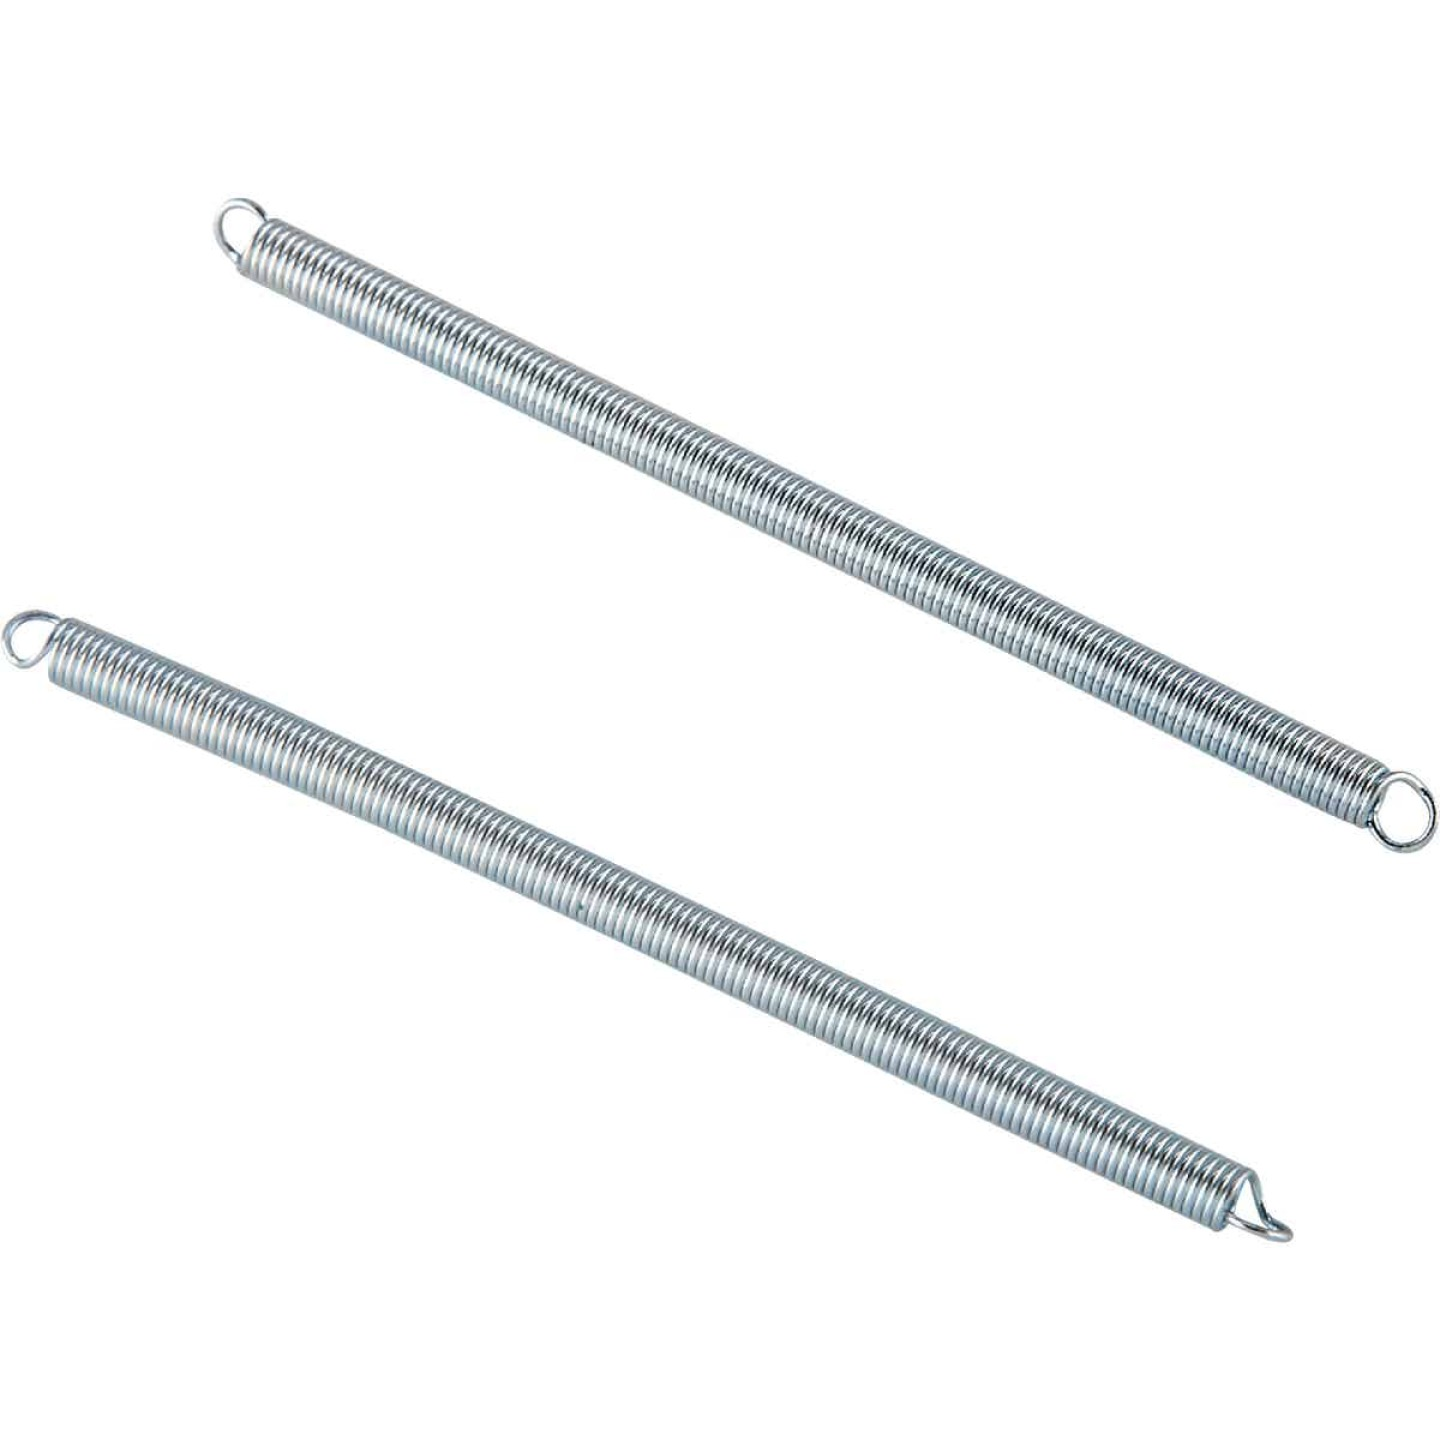 Century Spring 1-7/8 In. x 1/8 In. Extension Spring (2 Count) Image 1